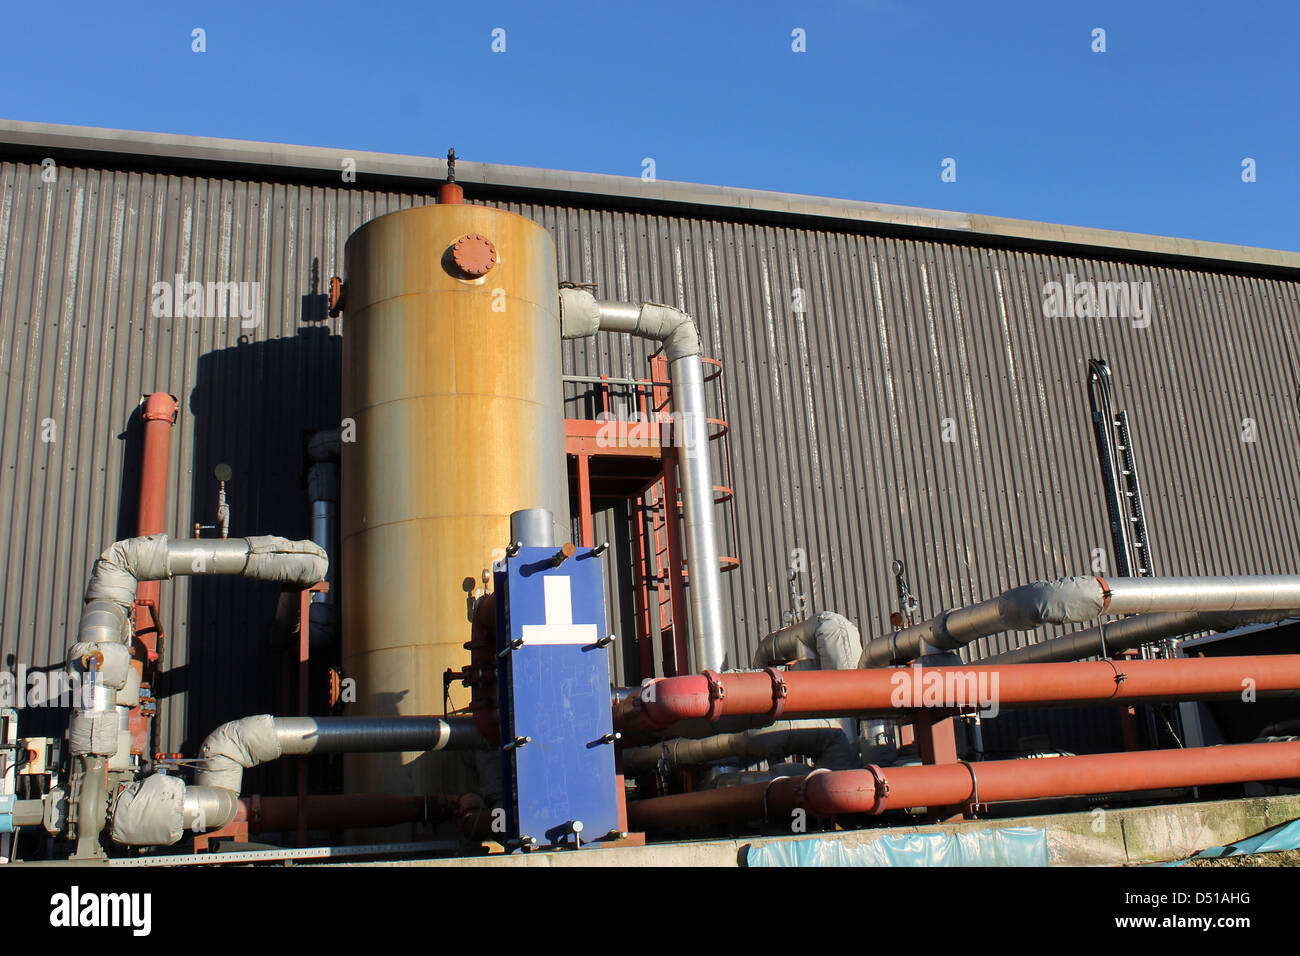 Exterior of modern industrial building with pipes and tank. - Stock Image